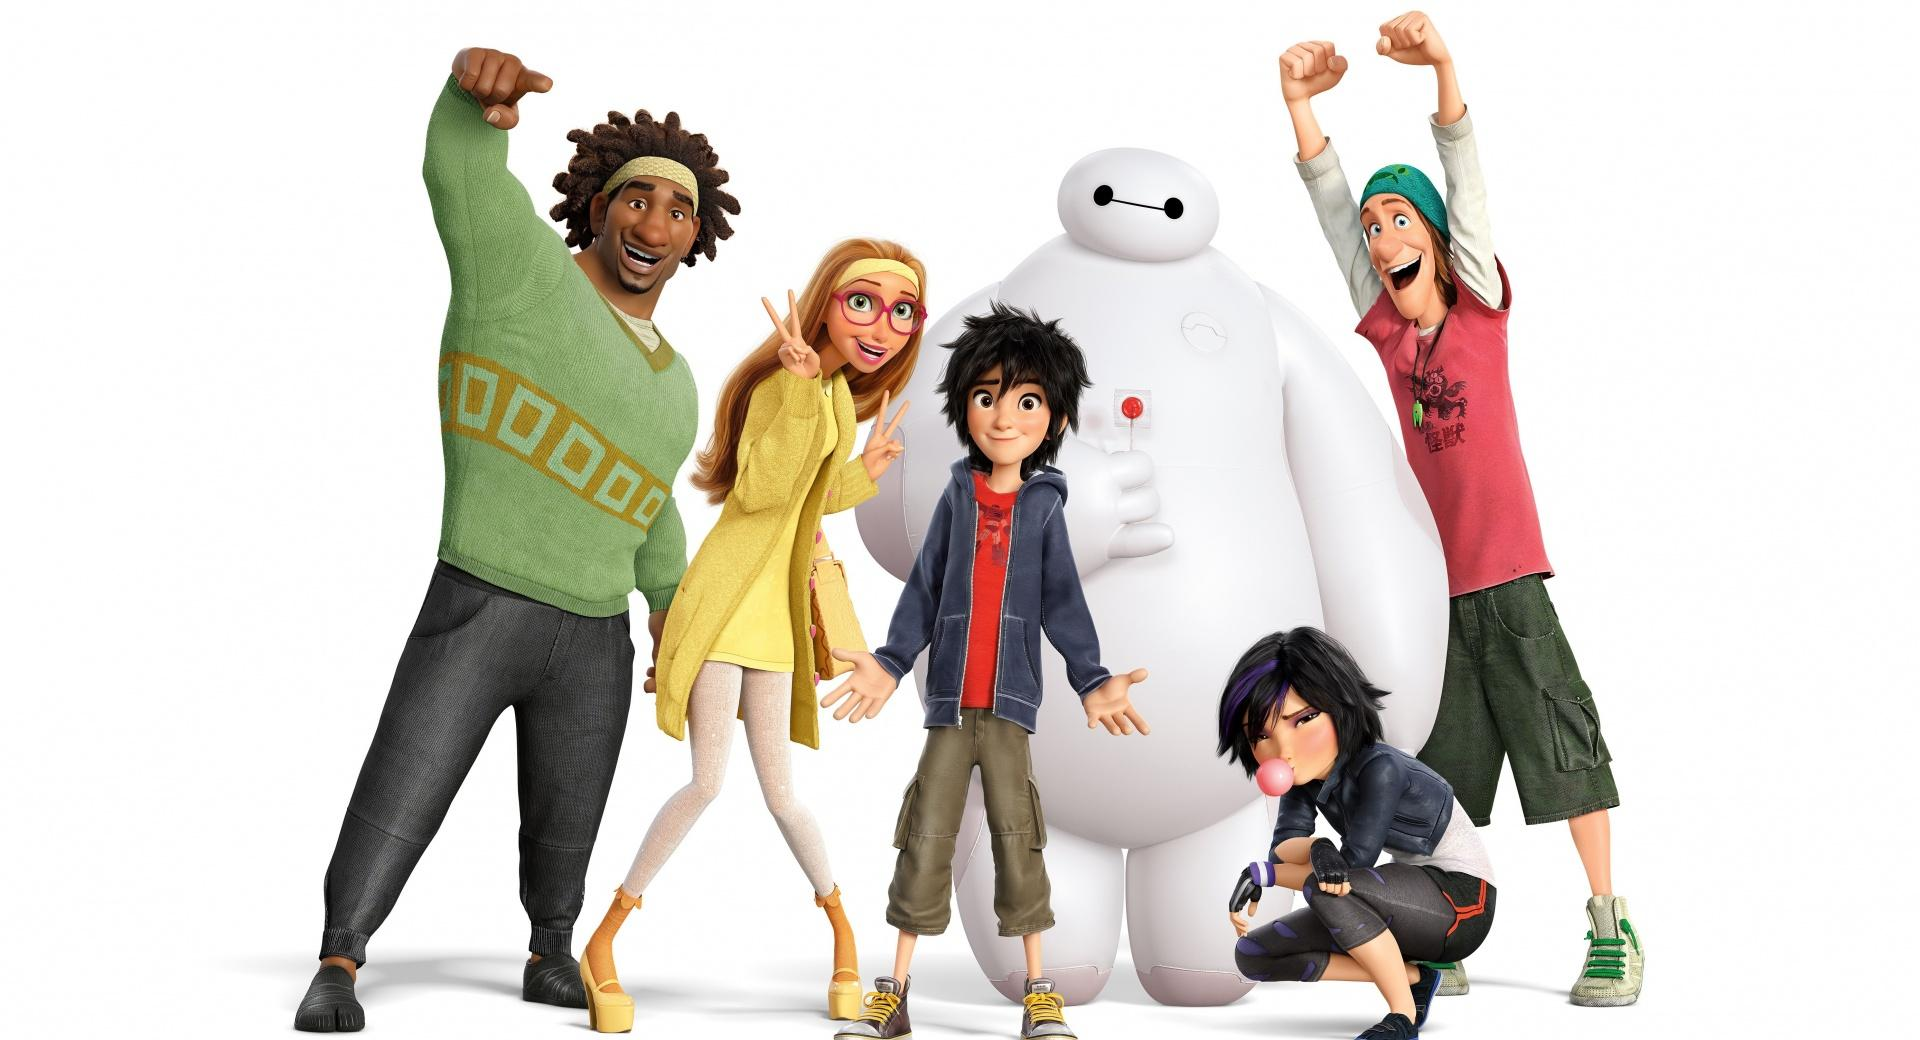 Big Hero 6 Characters wallpapers HD quality